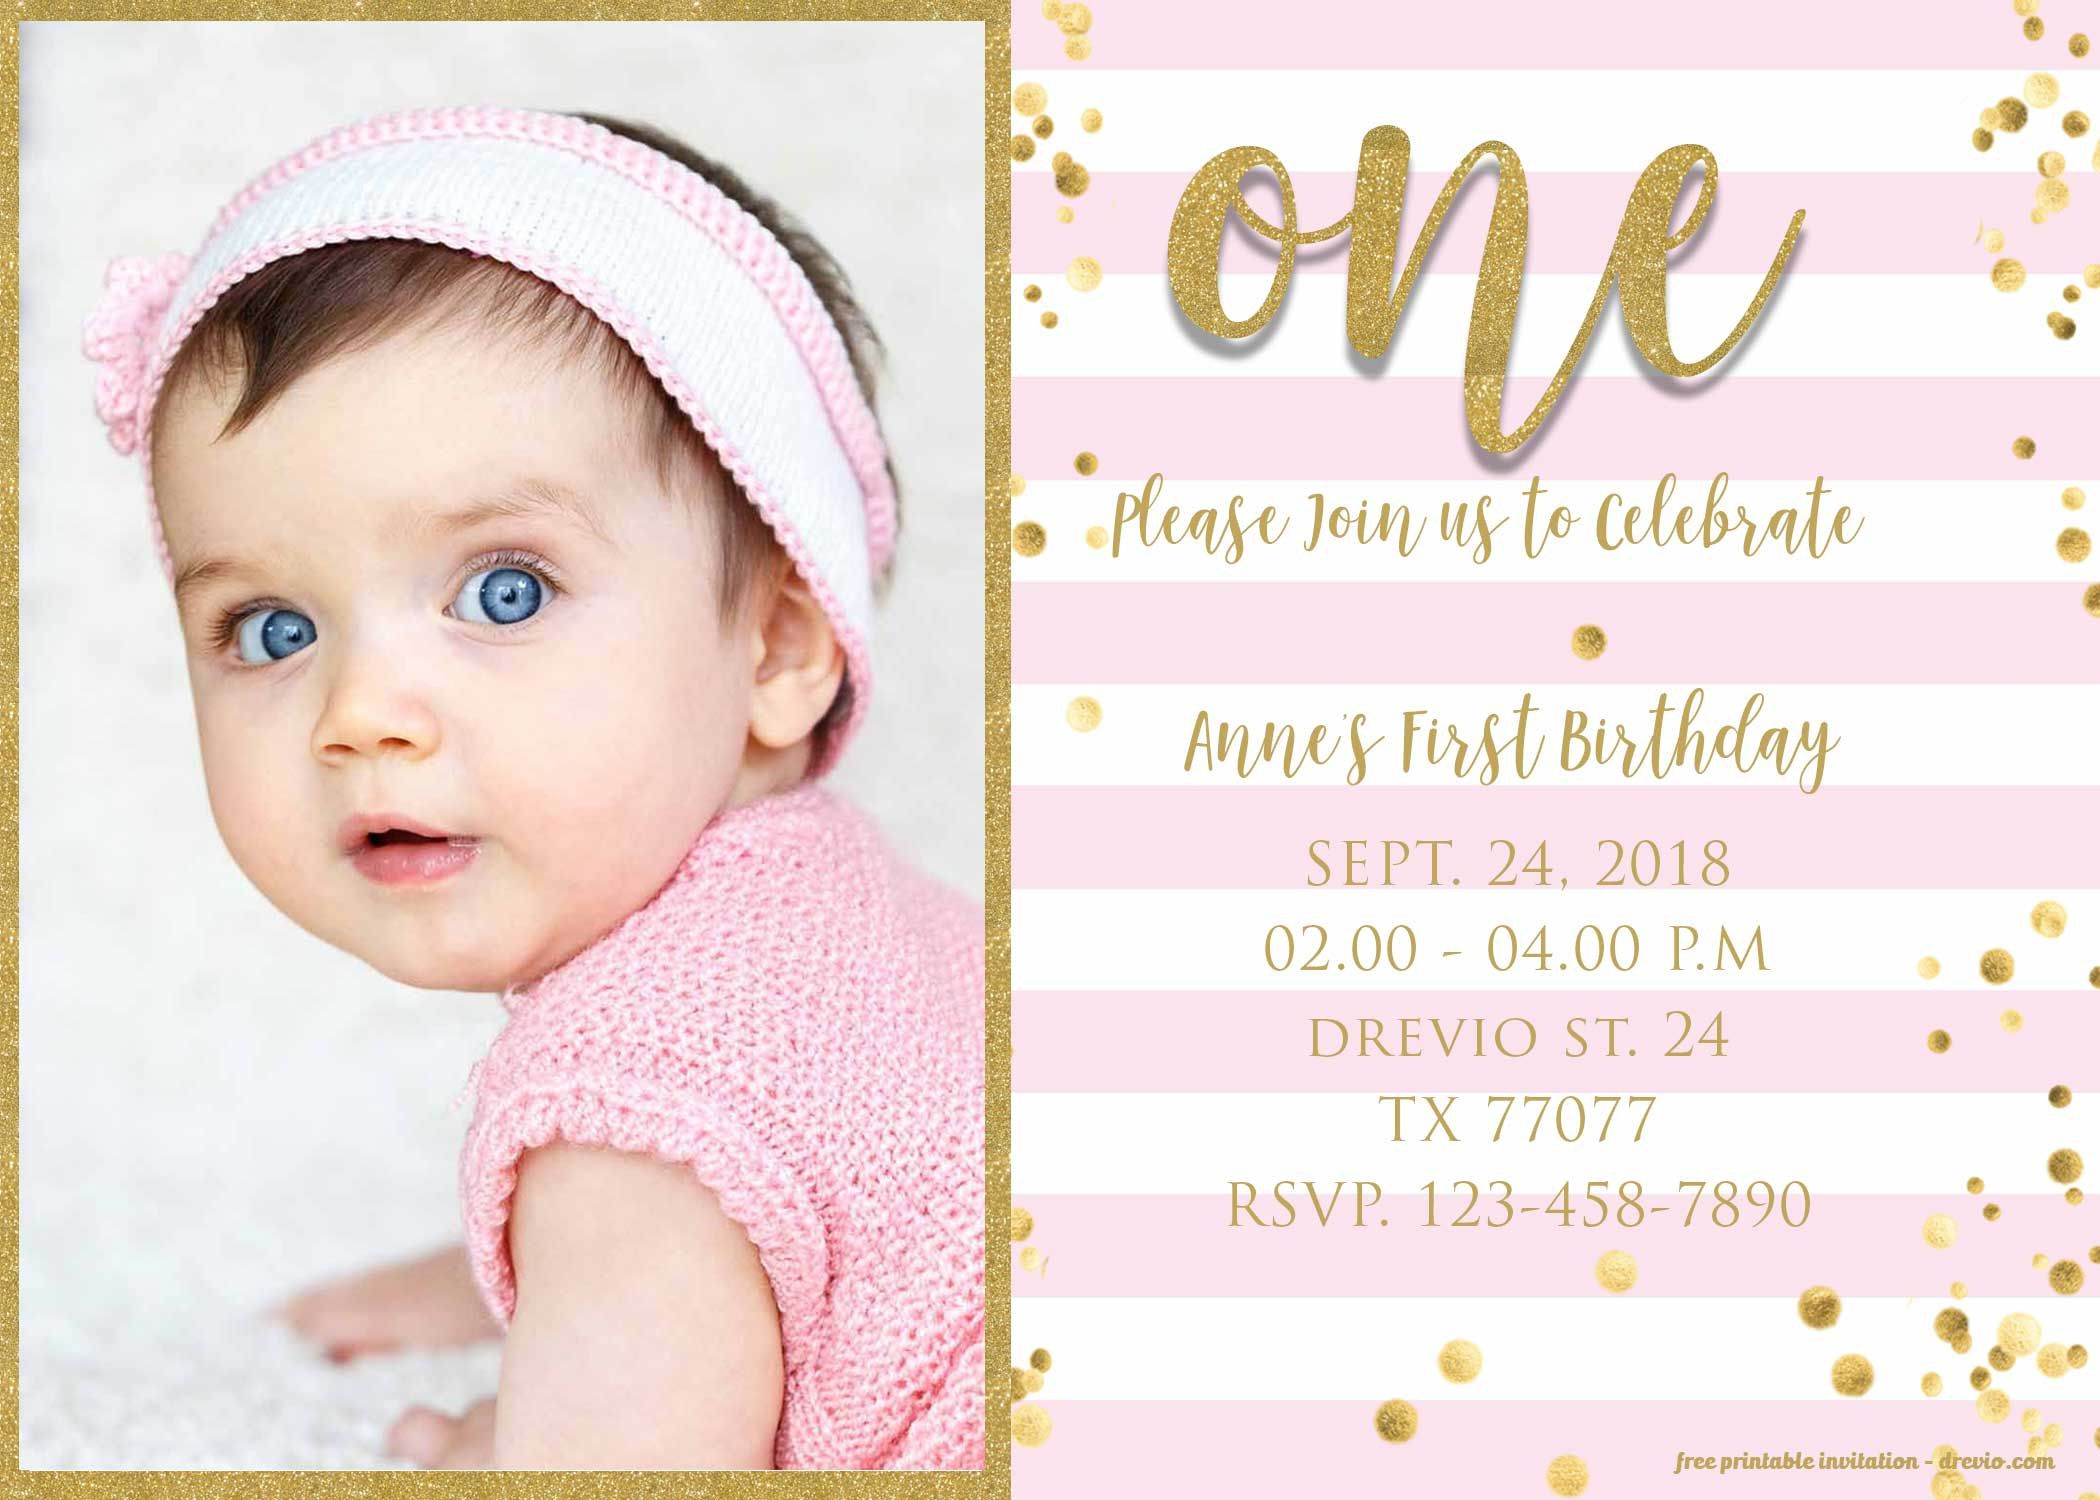 009 Magnificent 1st Birthday Invitation Template Concept  Background Design Blank For Girl First Baby Boy Free Download IndianFull